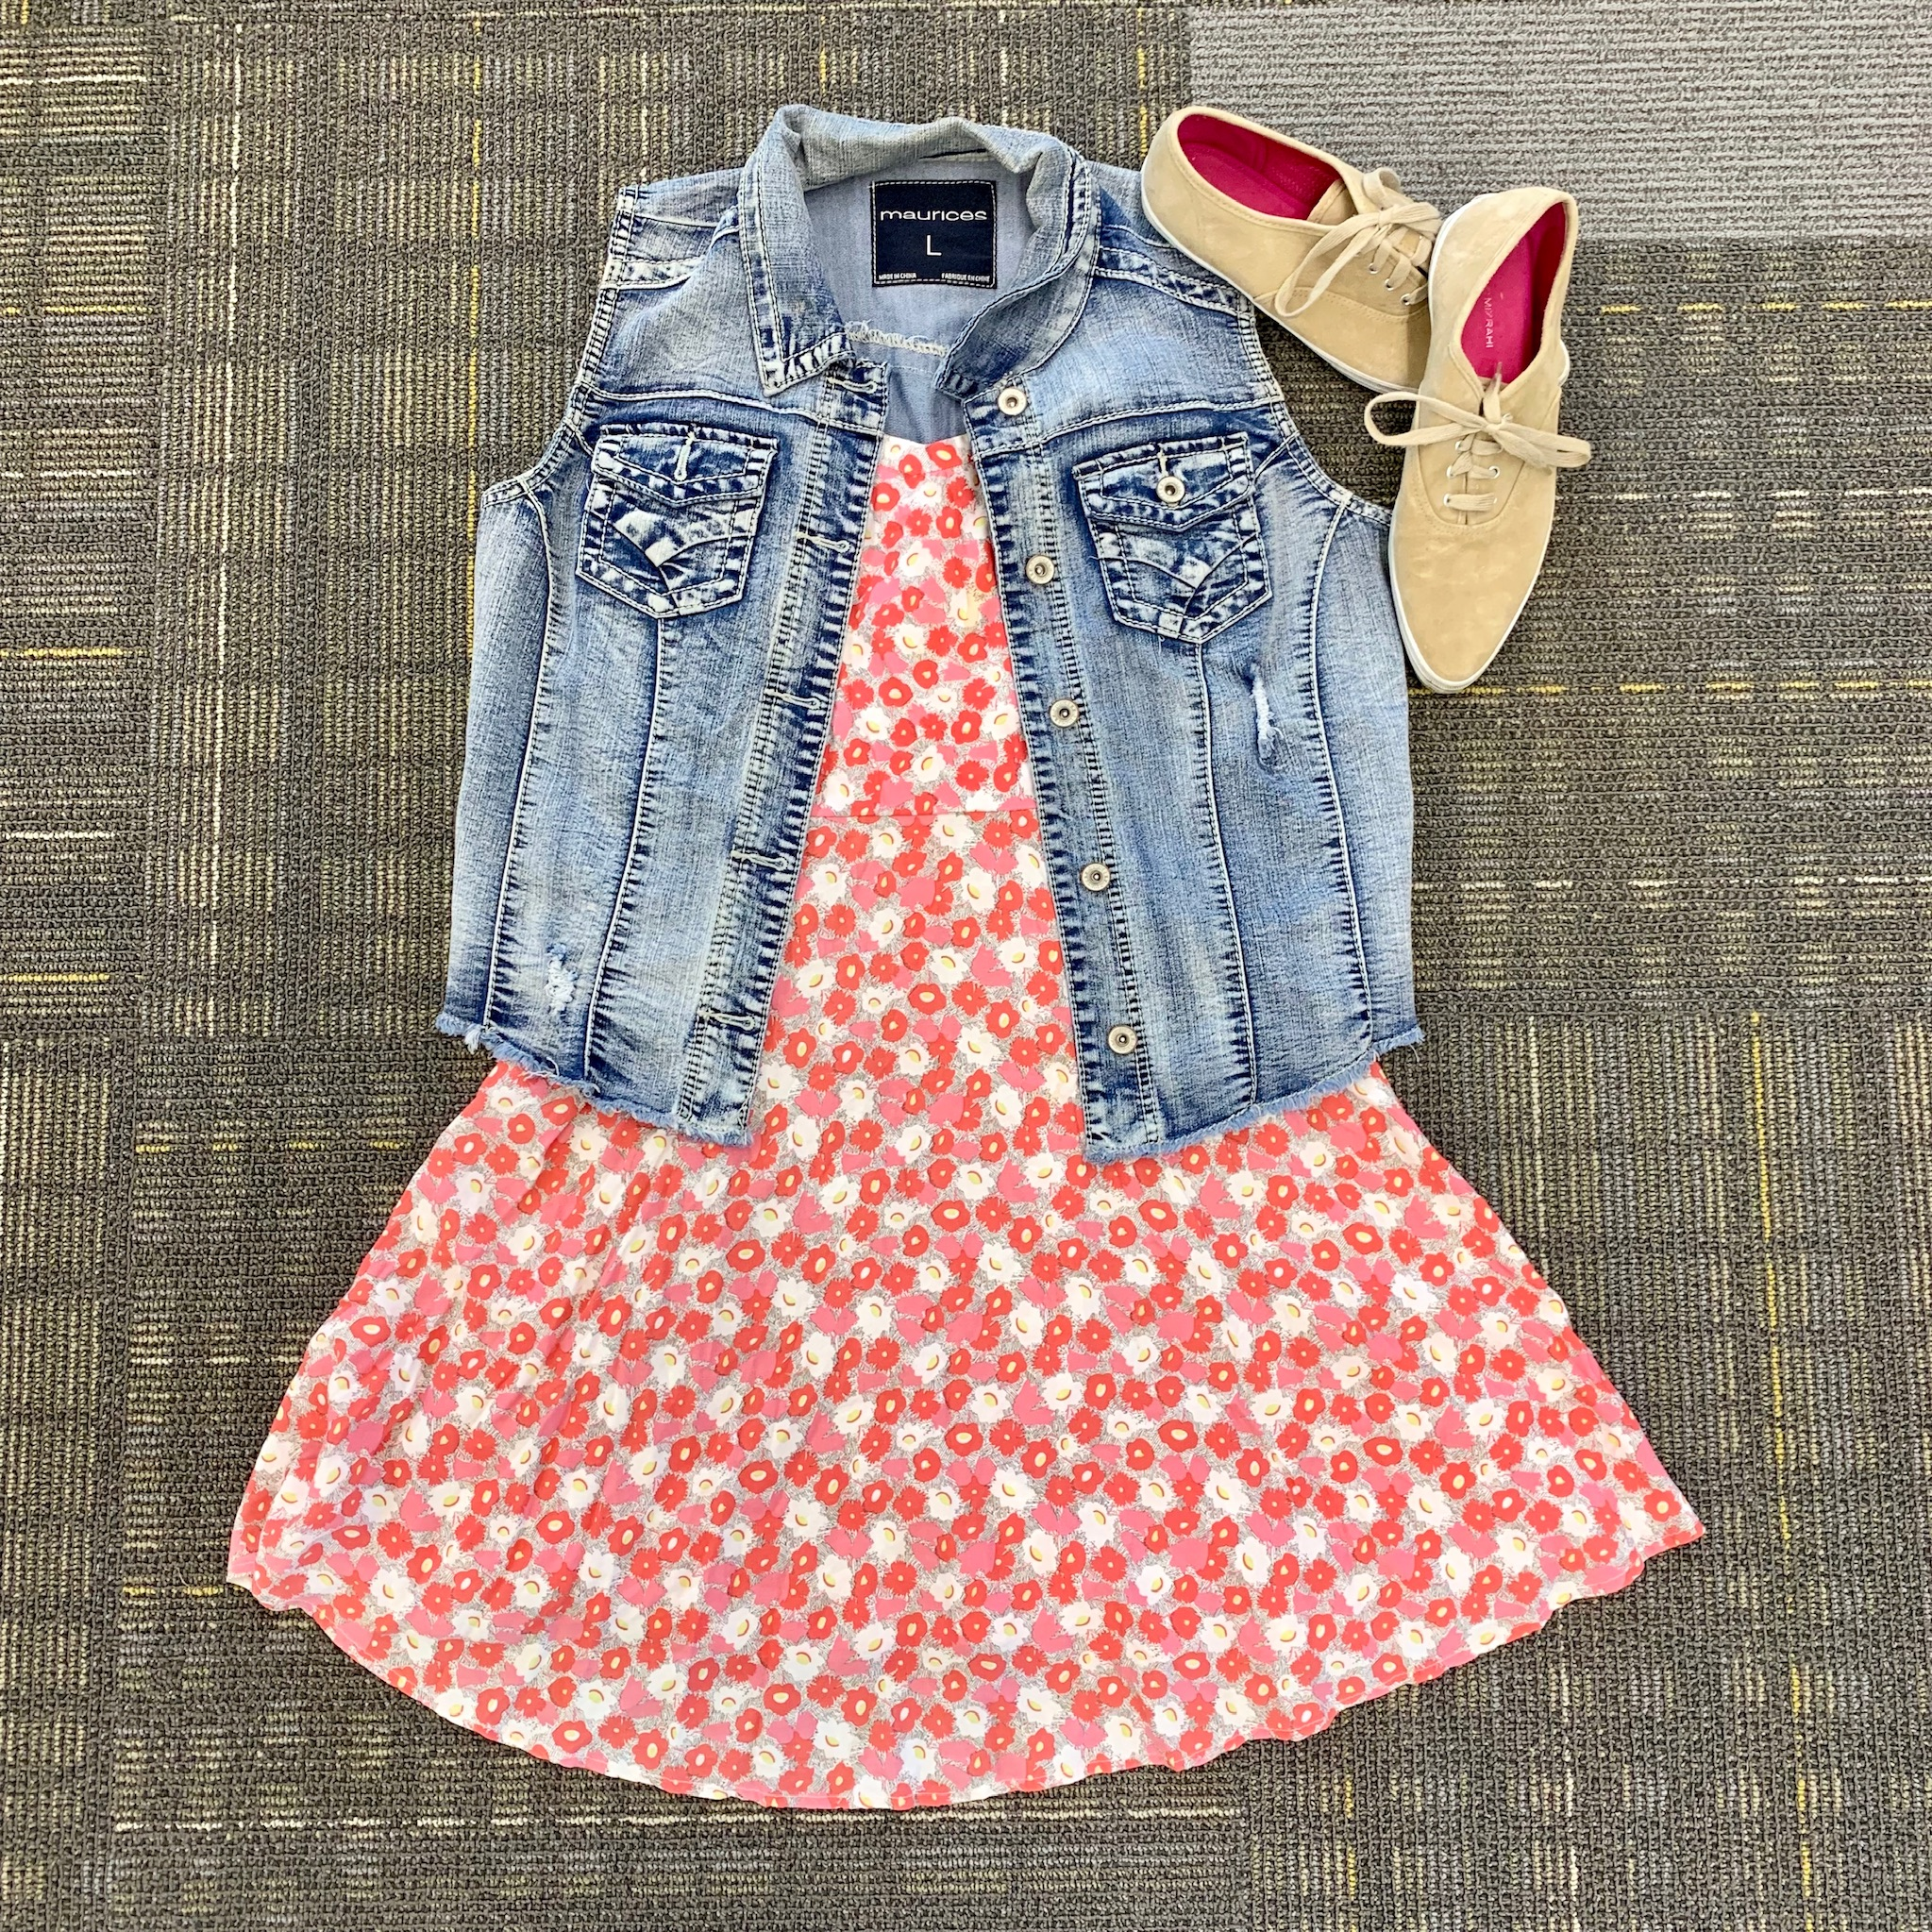 denim vest over pink and coral floral dress with tan suede sneakers